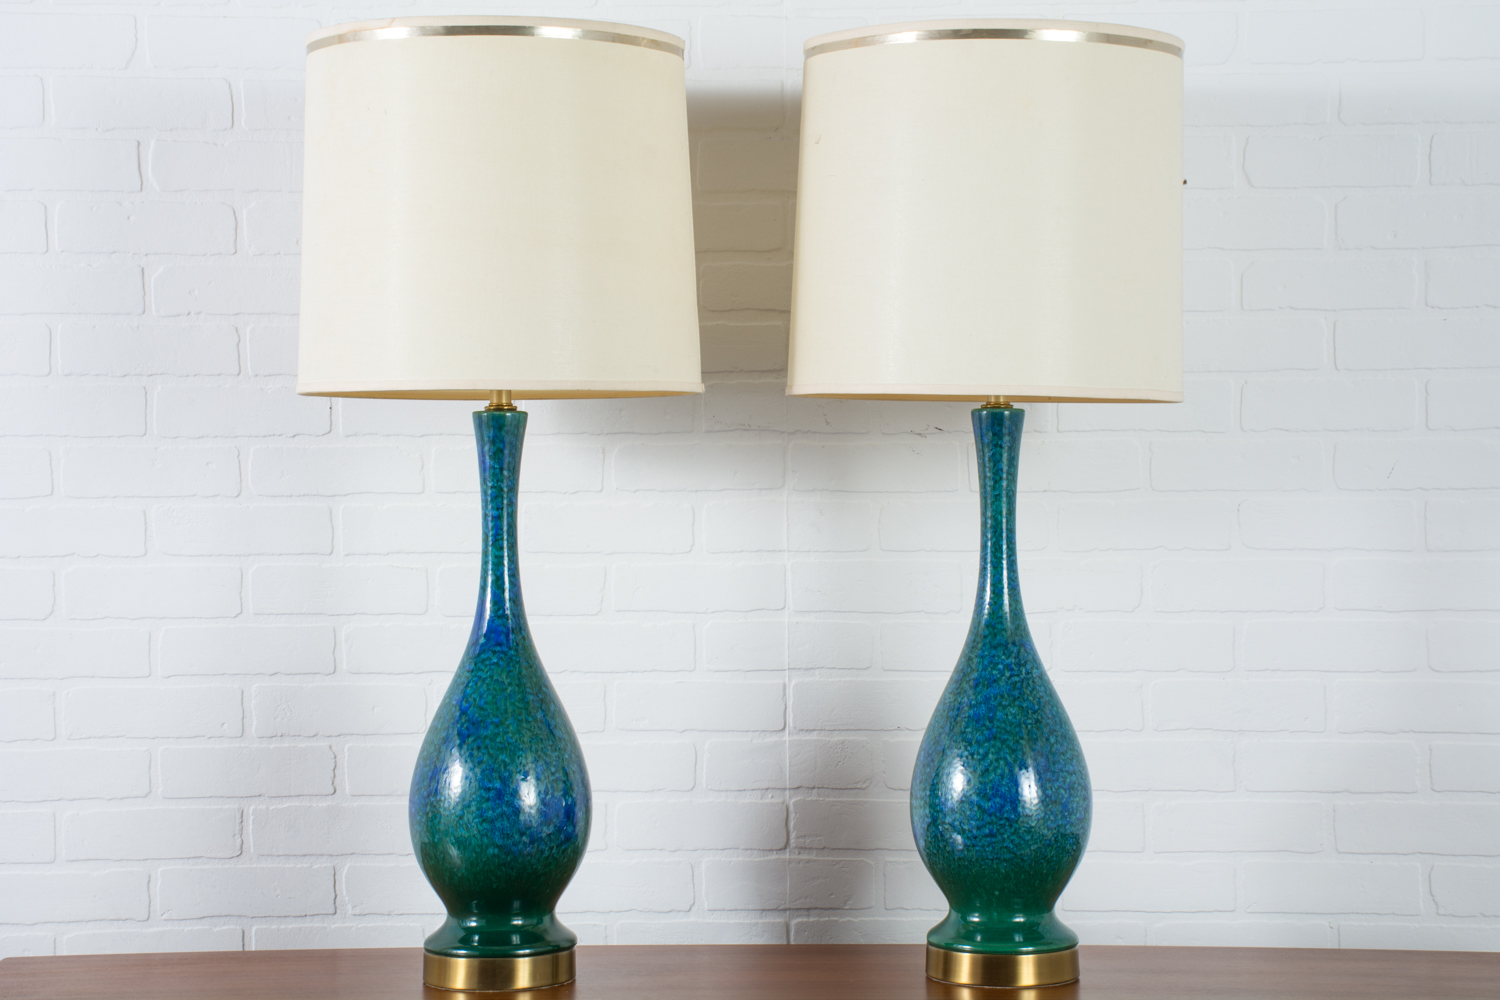 Pair Of Vintage Mid Century Blue And Green Ceramic Table Lamps 1960s Mid Century Modern Finds